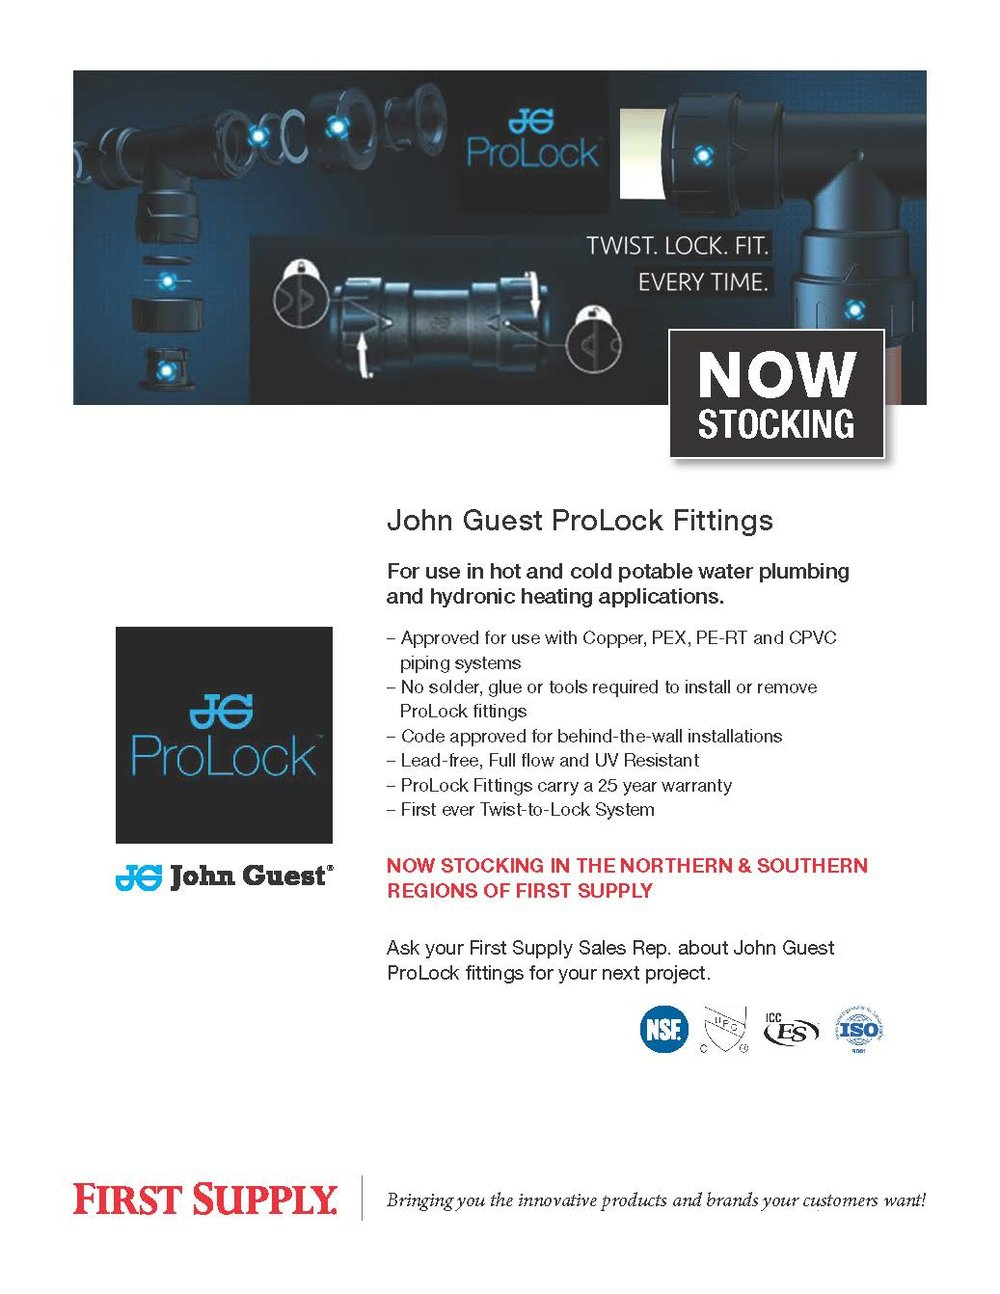 John Guest - ProLock Fittings